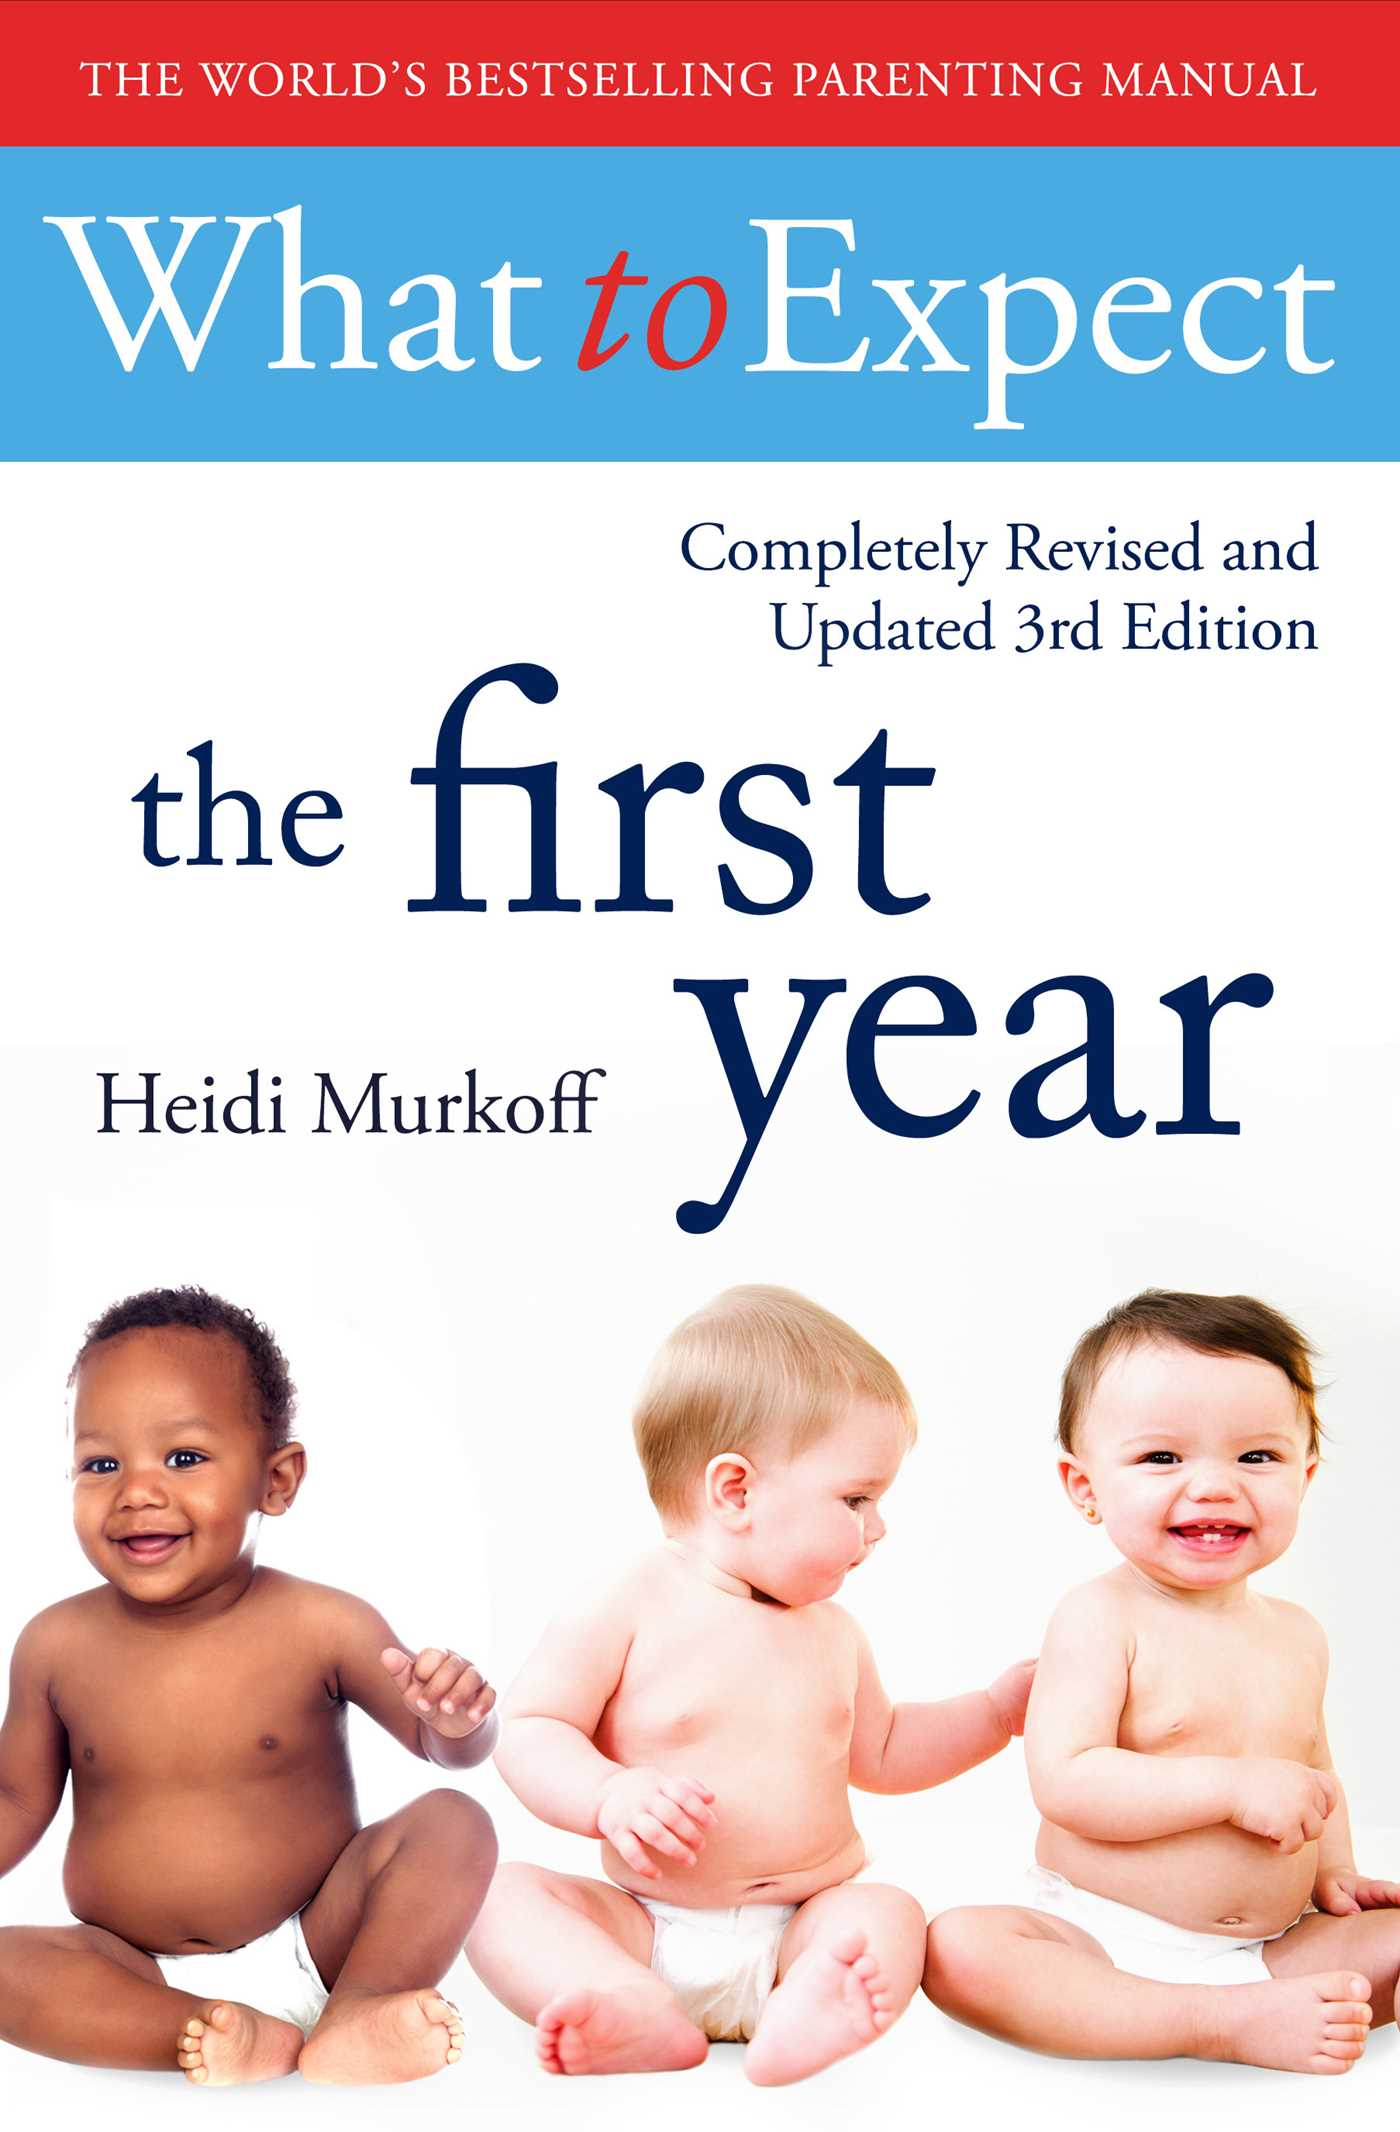 What to expect the 1st year rev edition 9781471173349 hr